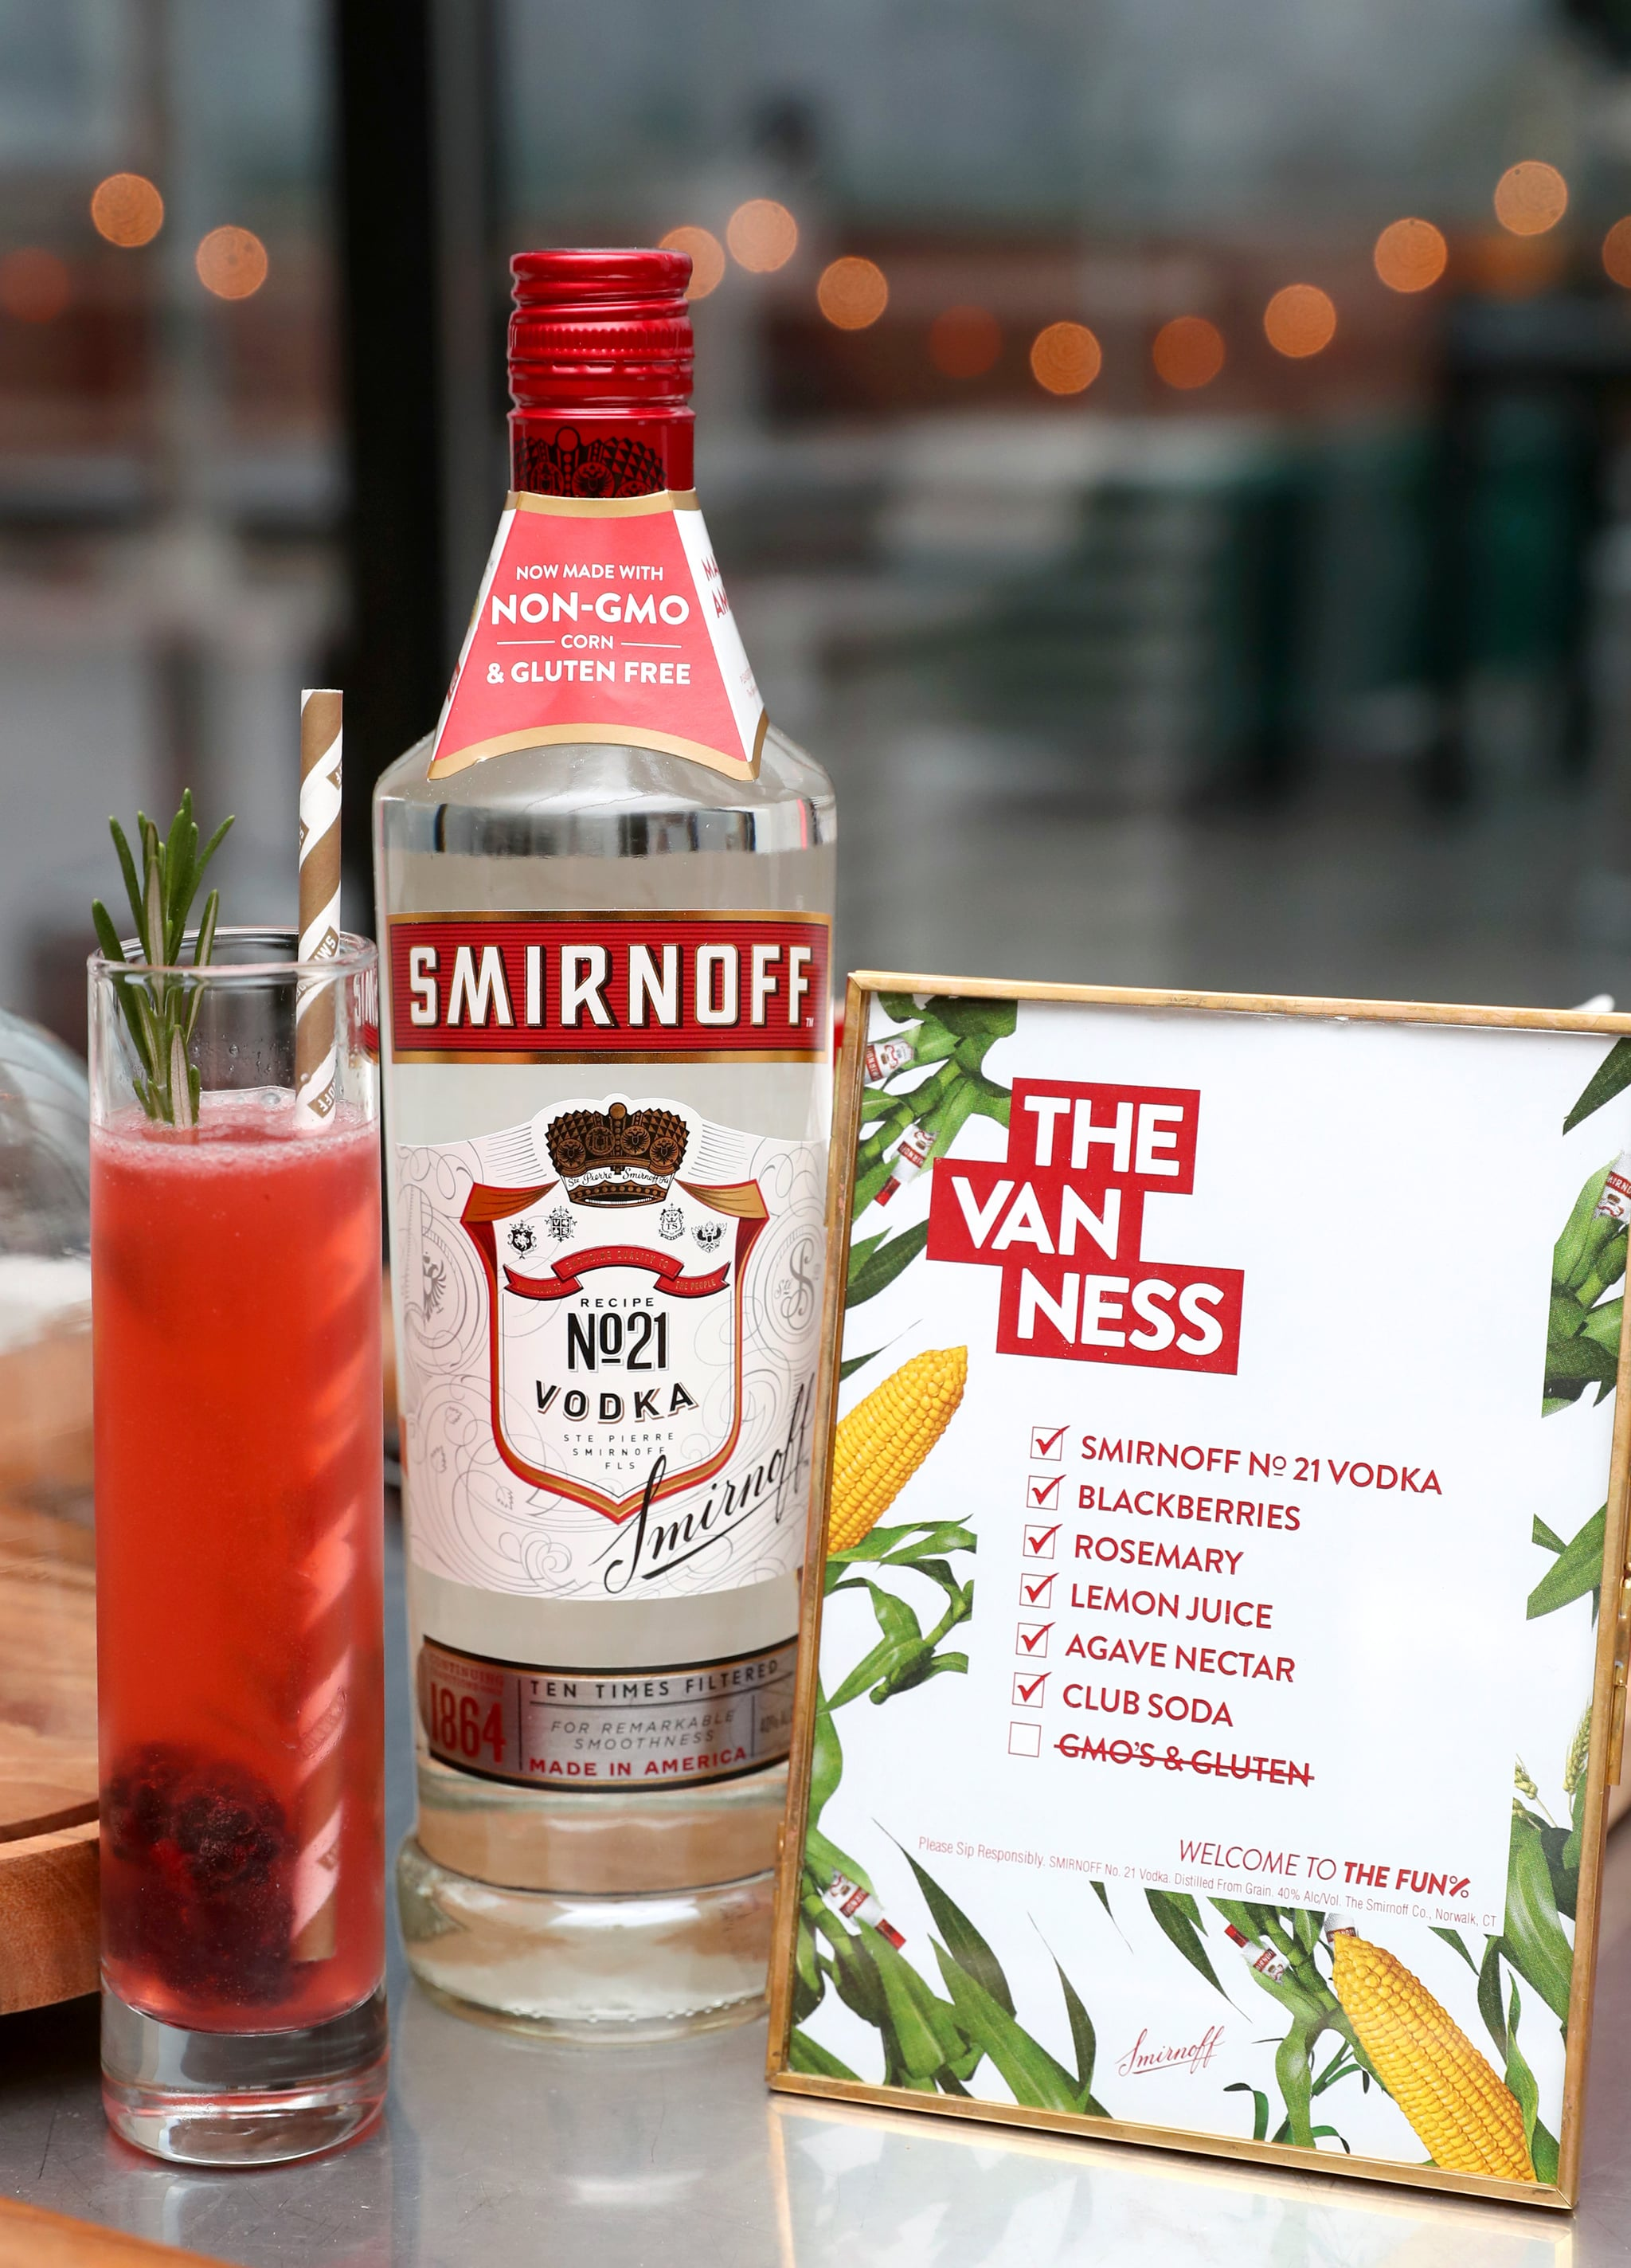 NEW YORK, NY - OCTOBER 8:  The Van Ness (YASS!) made with Smirnoff No. 21 Vodka, now non-GMO on display on October 8, 2018 in New York City.  (Photo by Cindy Ord/Getty Images for Smirnoff)